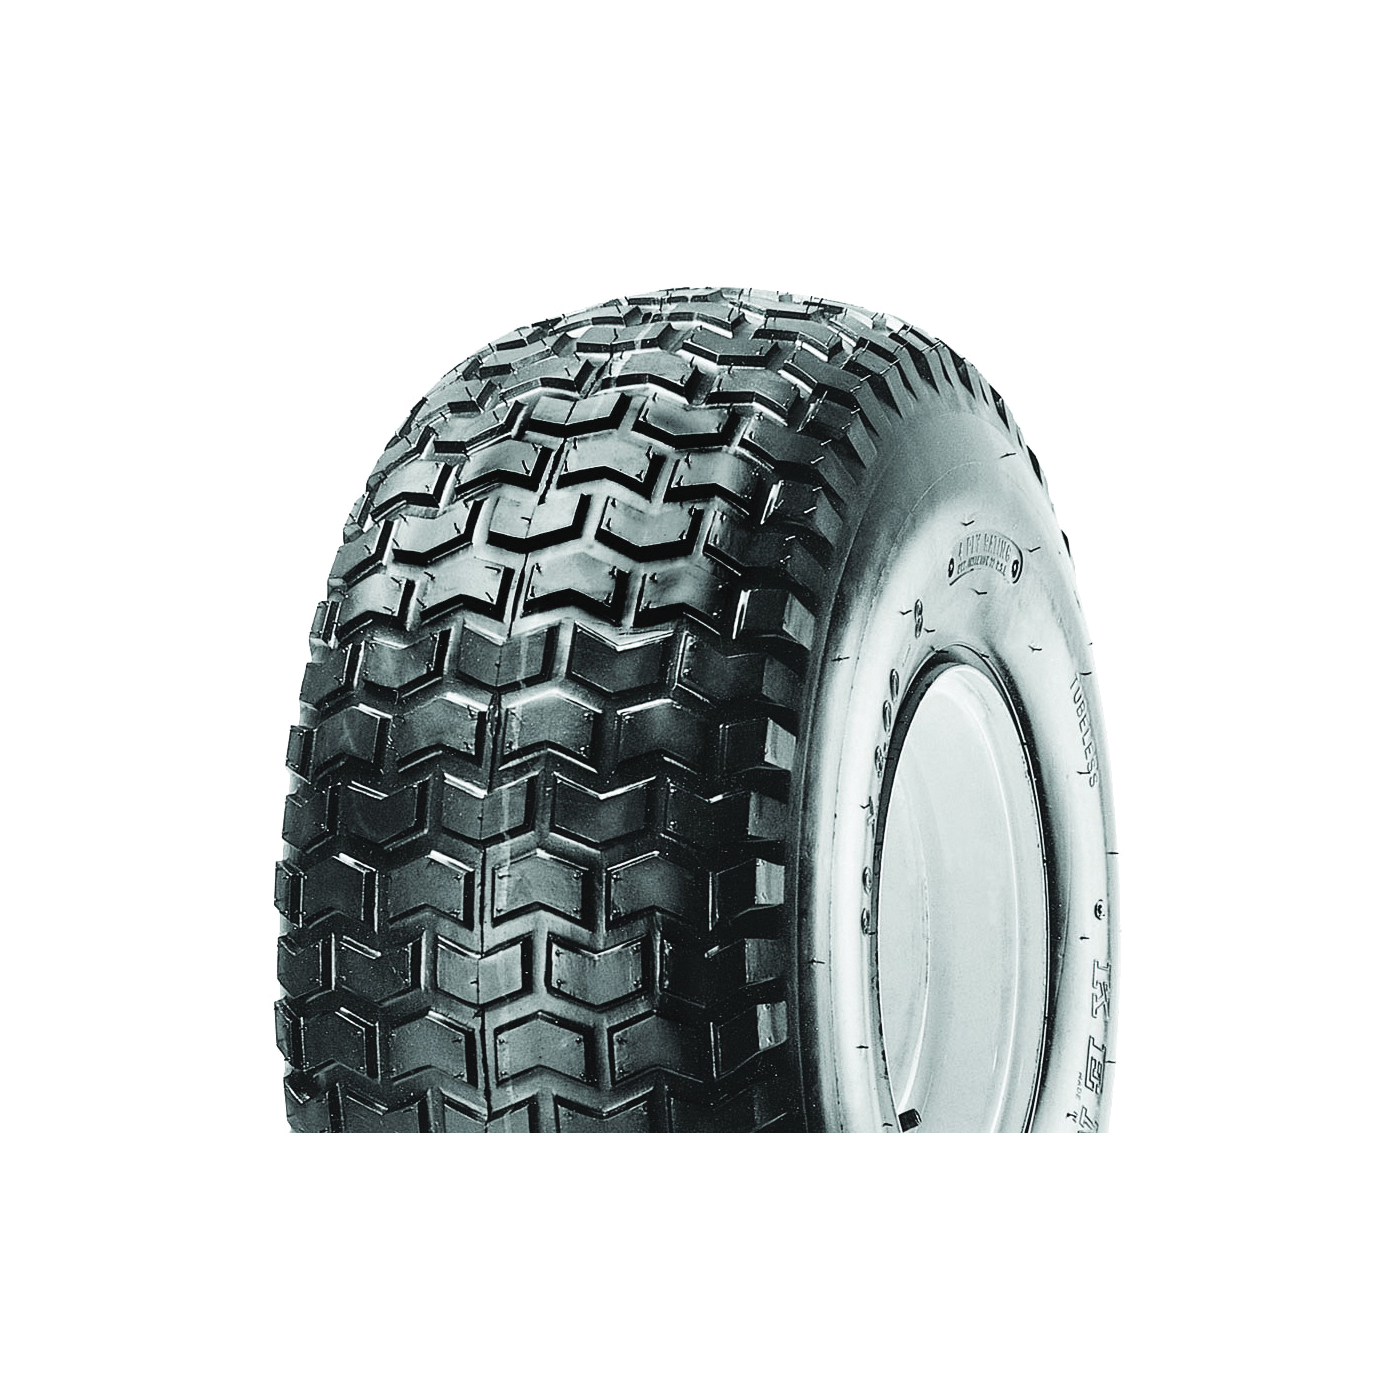 Picture of MARTIN WHEEL 858-2TR-I Turf Rider Tire, Tubeless, For: 8 x 7 in Rim Lawnmowers and Tractors